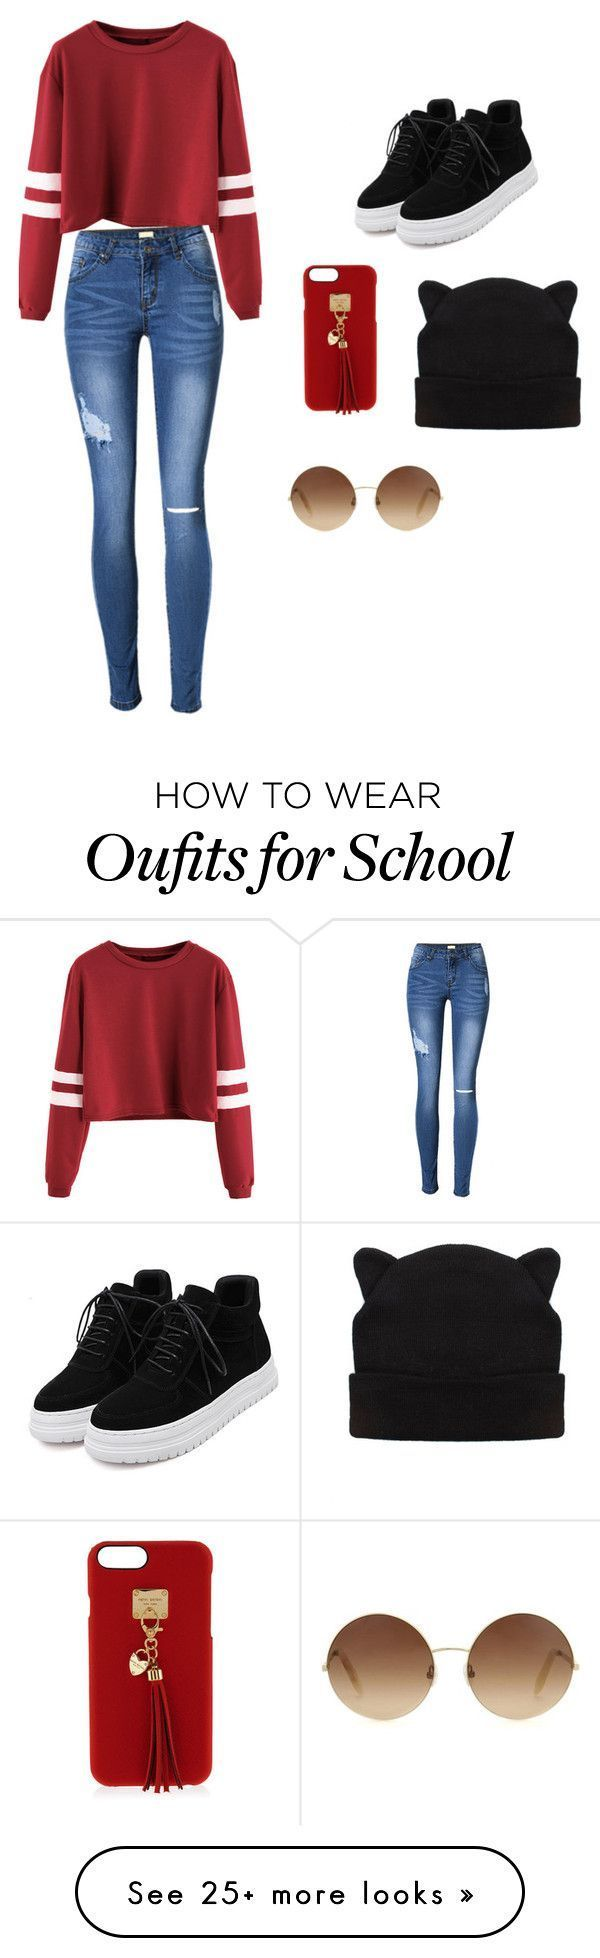 7 cute teen girls school outfits for spring Fashion is life, and we love life. follow us and check out our products board #falloutfits2019